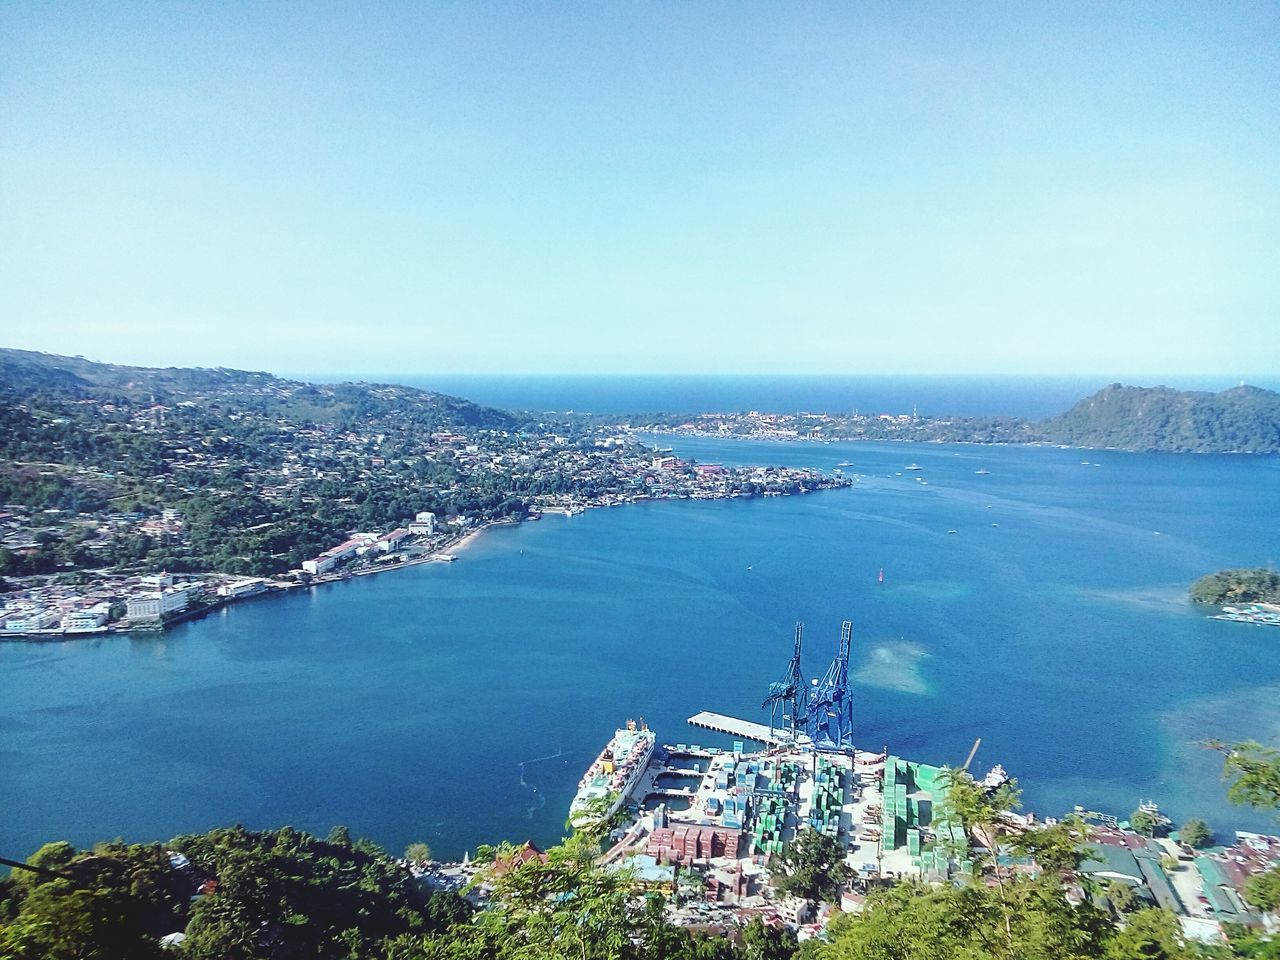 Water Sea Nautical Vessel City Cityscape Built Structure High Angle View Mode Of Transport Harbor Aerial View Copy Space Jayapura Papua Indonesia